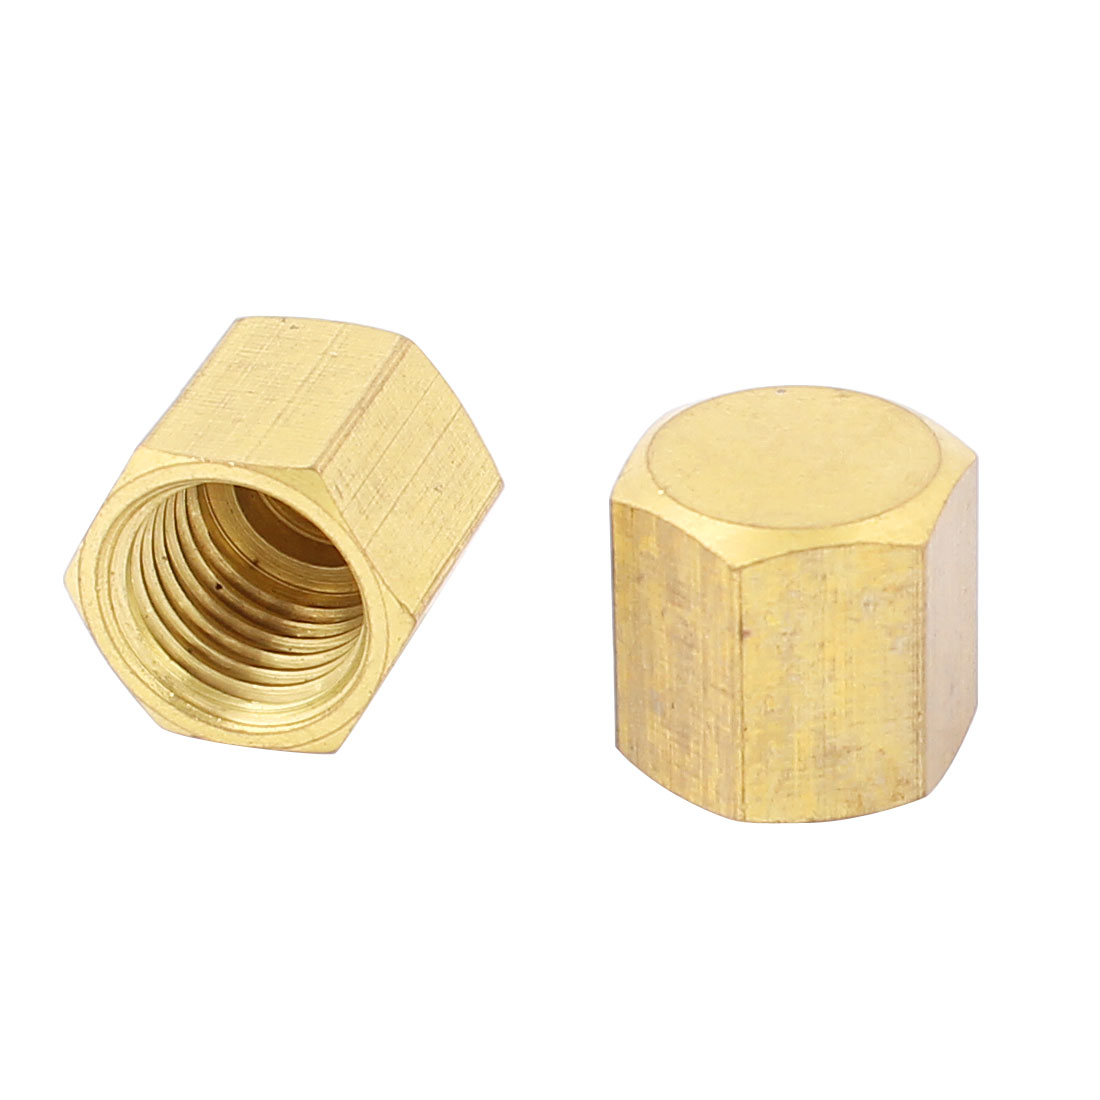 Air Conditioner 1/8NPT Thread Hex Head Pipe Connector Fitting 2pcs